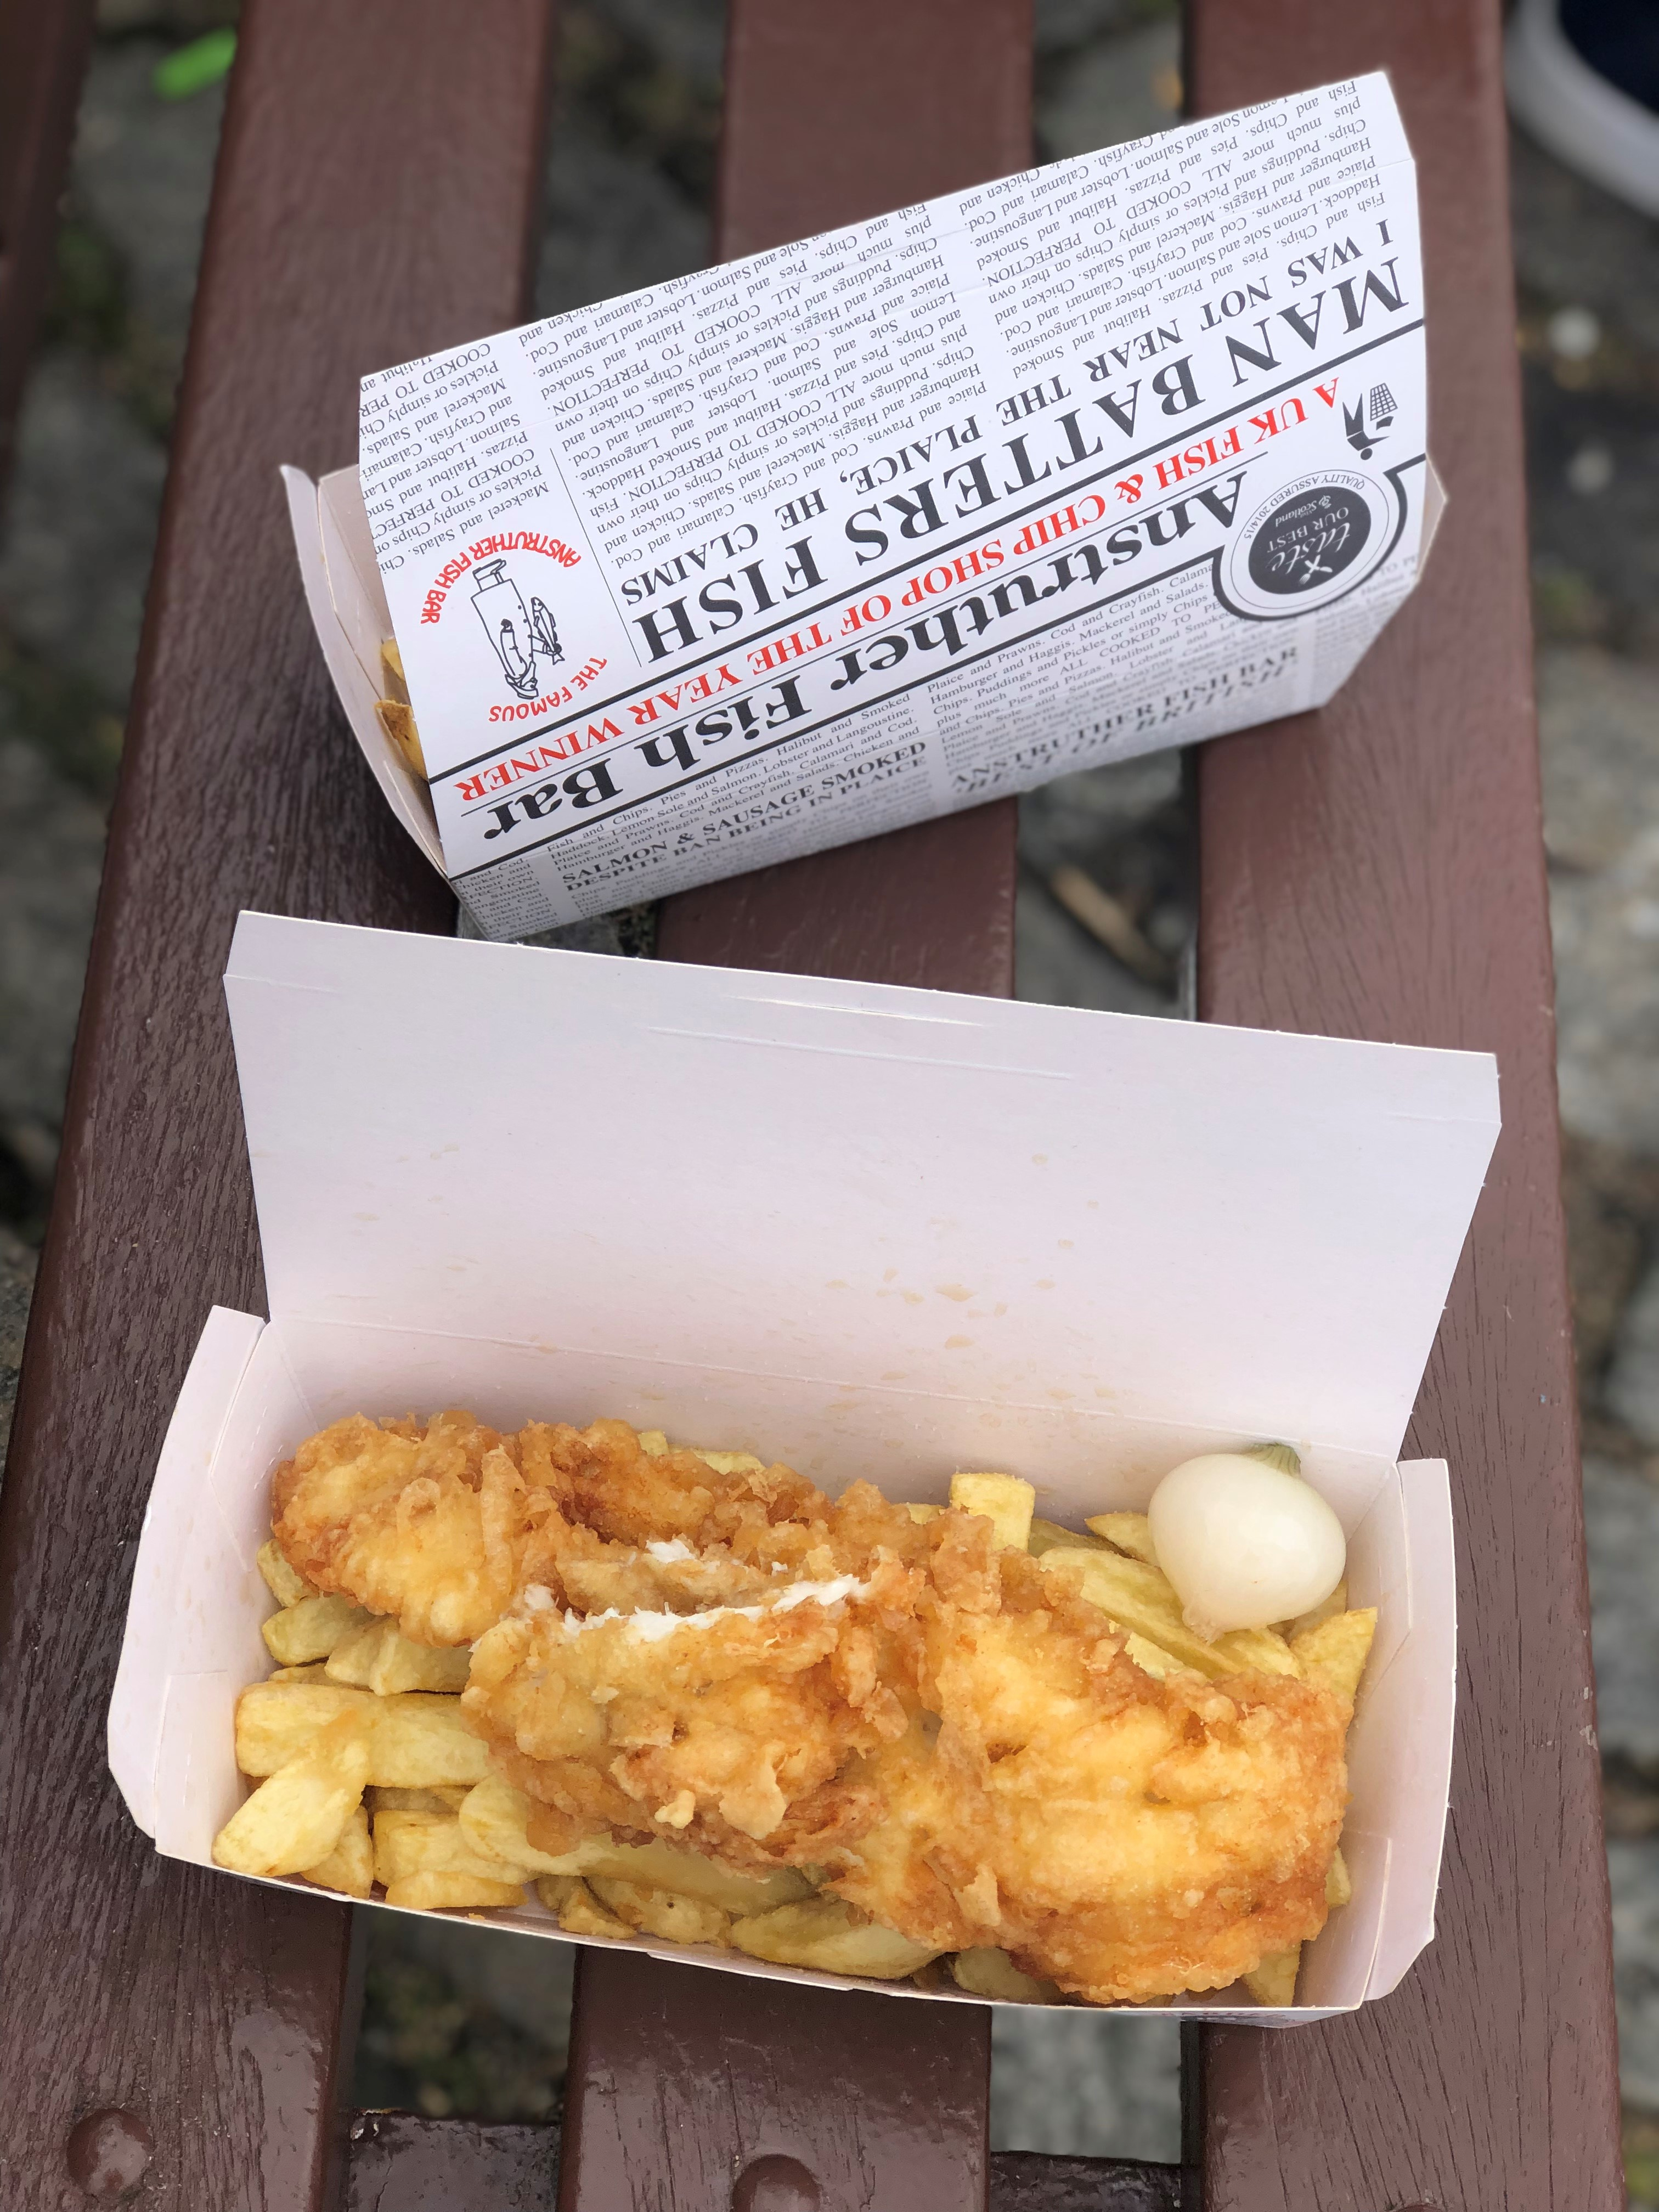 Anstruther fish and chips